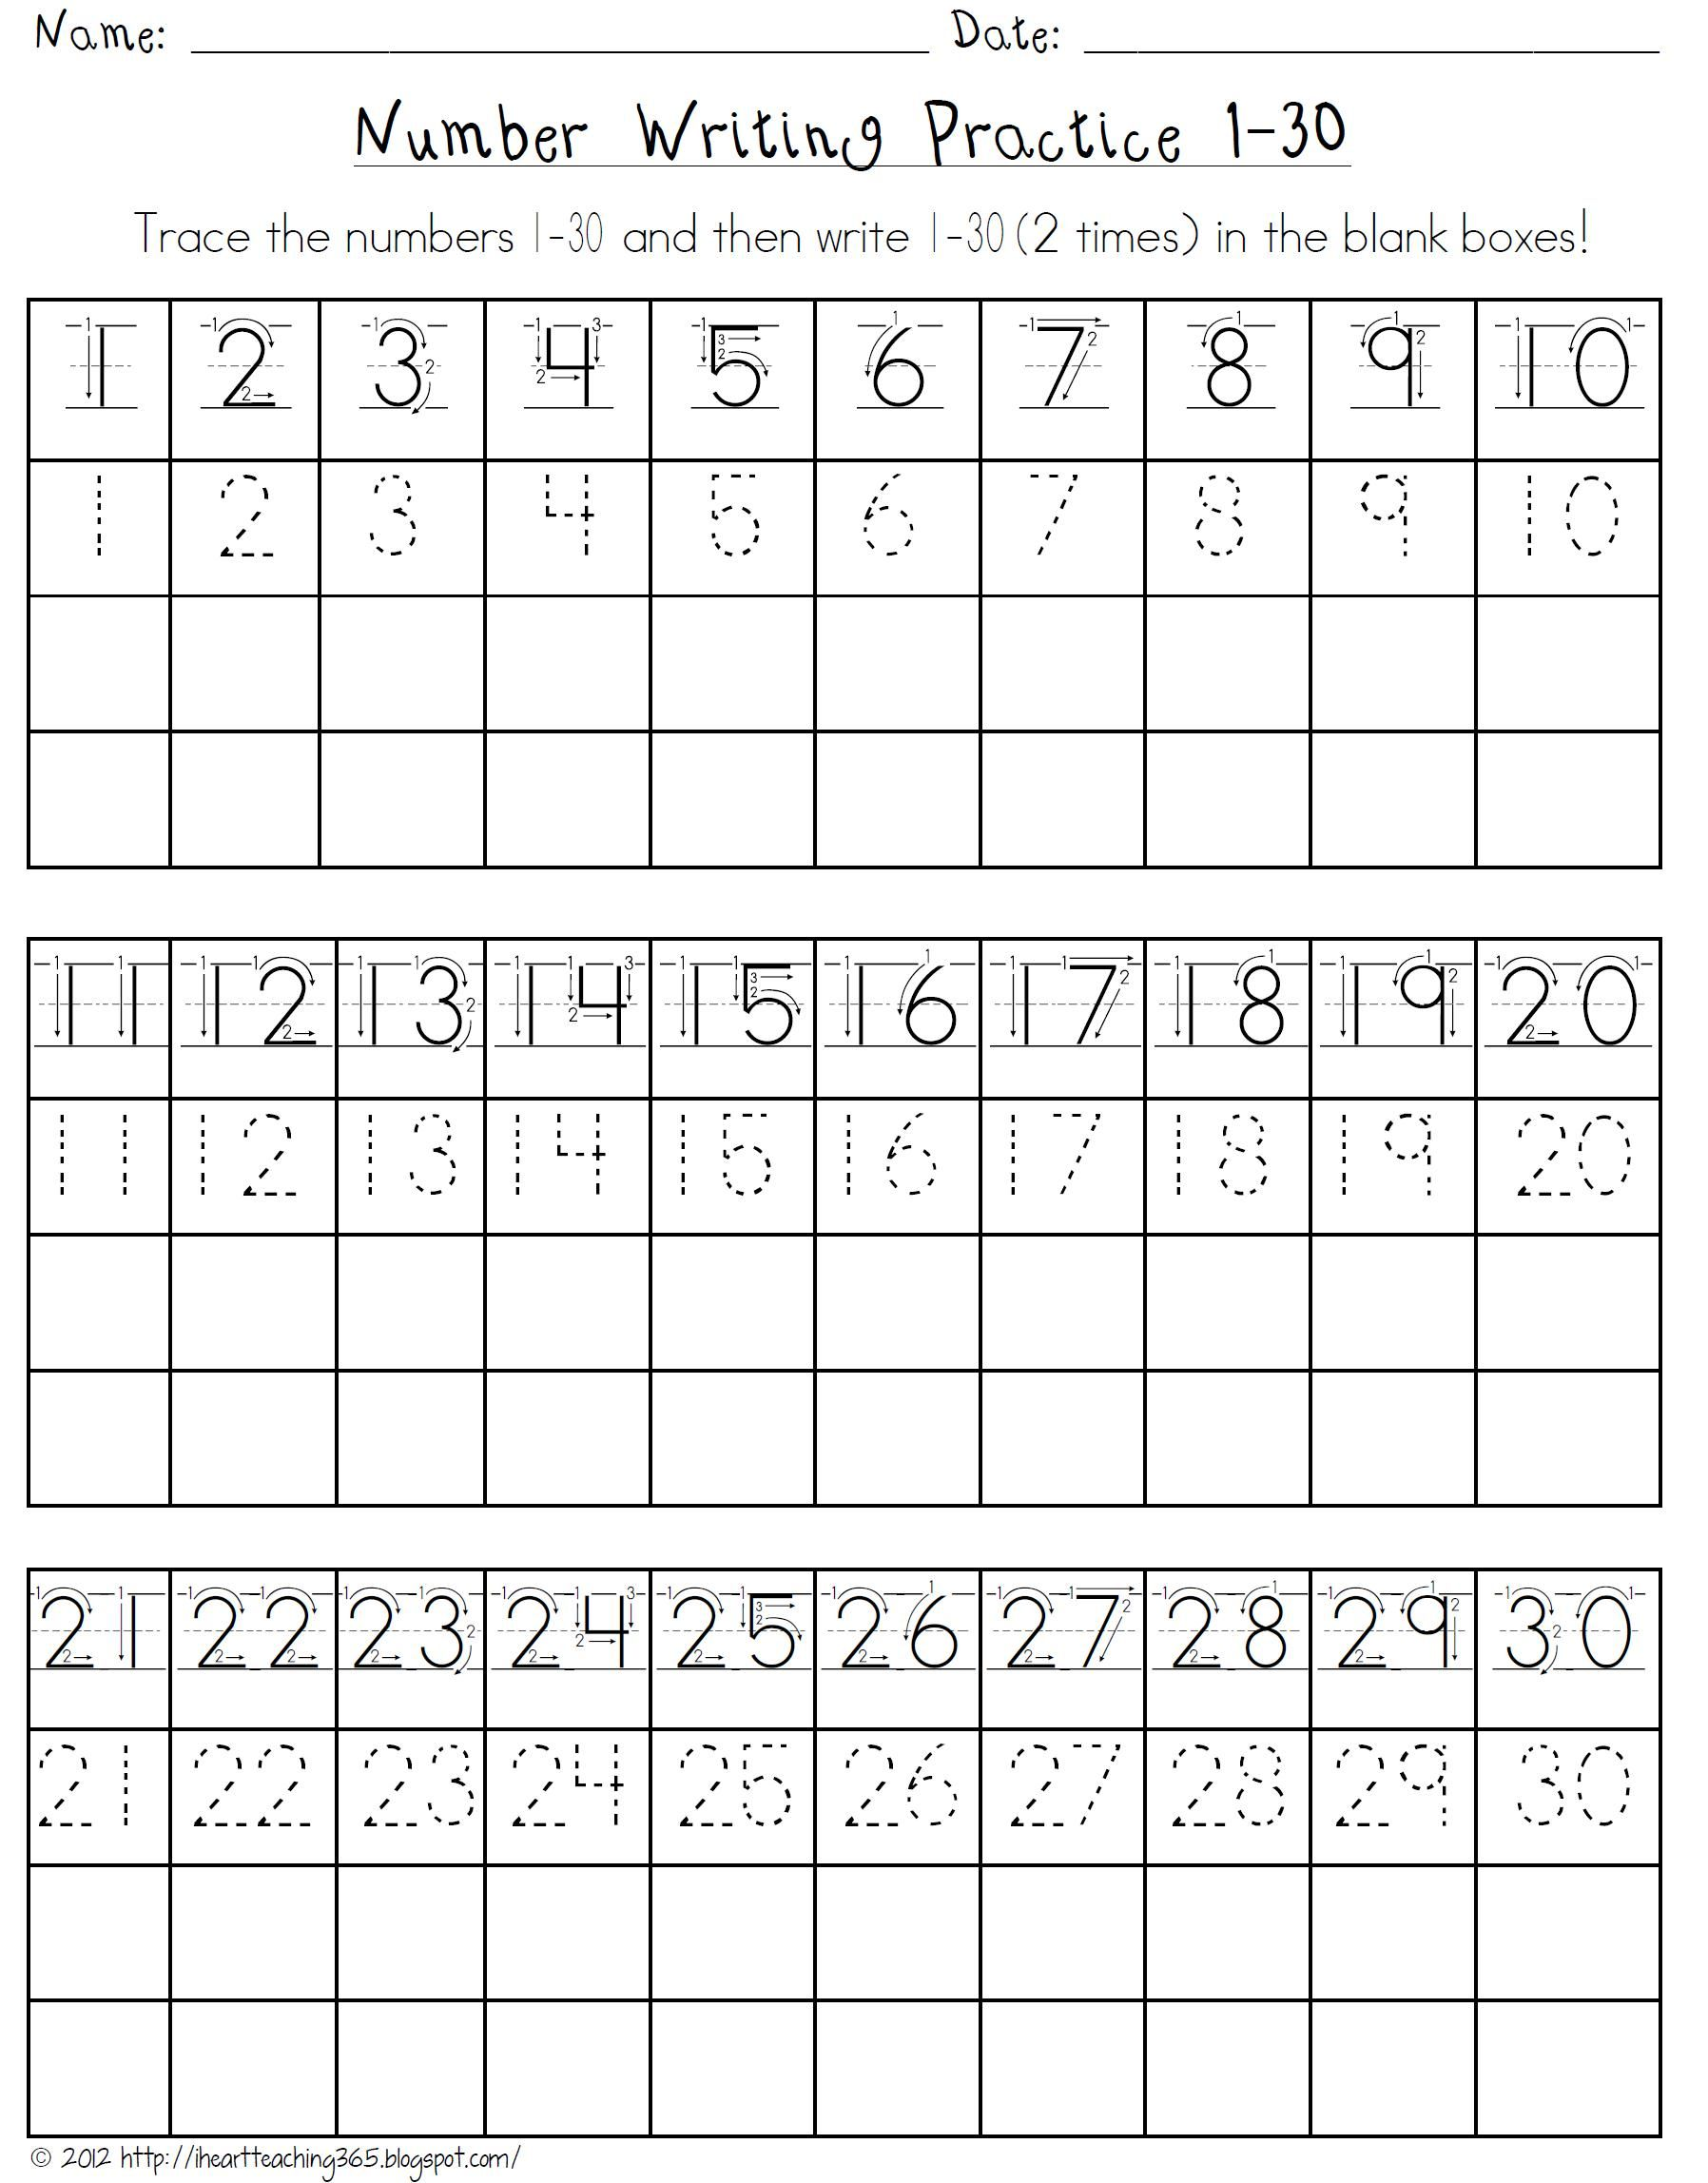 Number Writing Practice 1 30